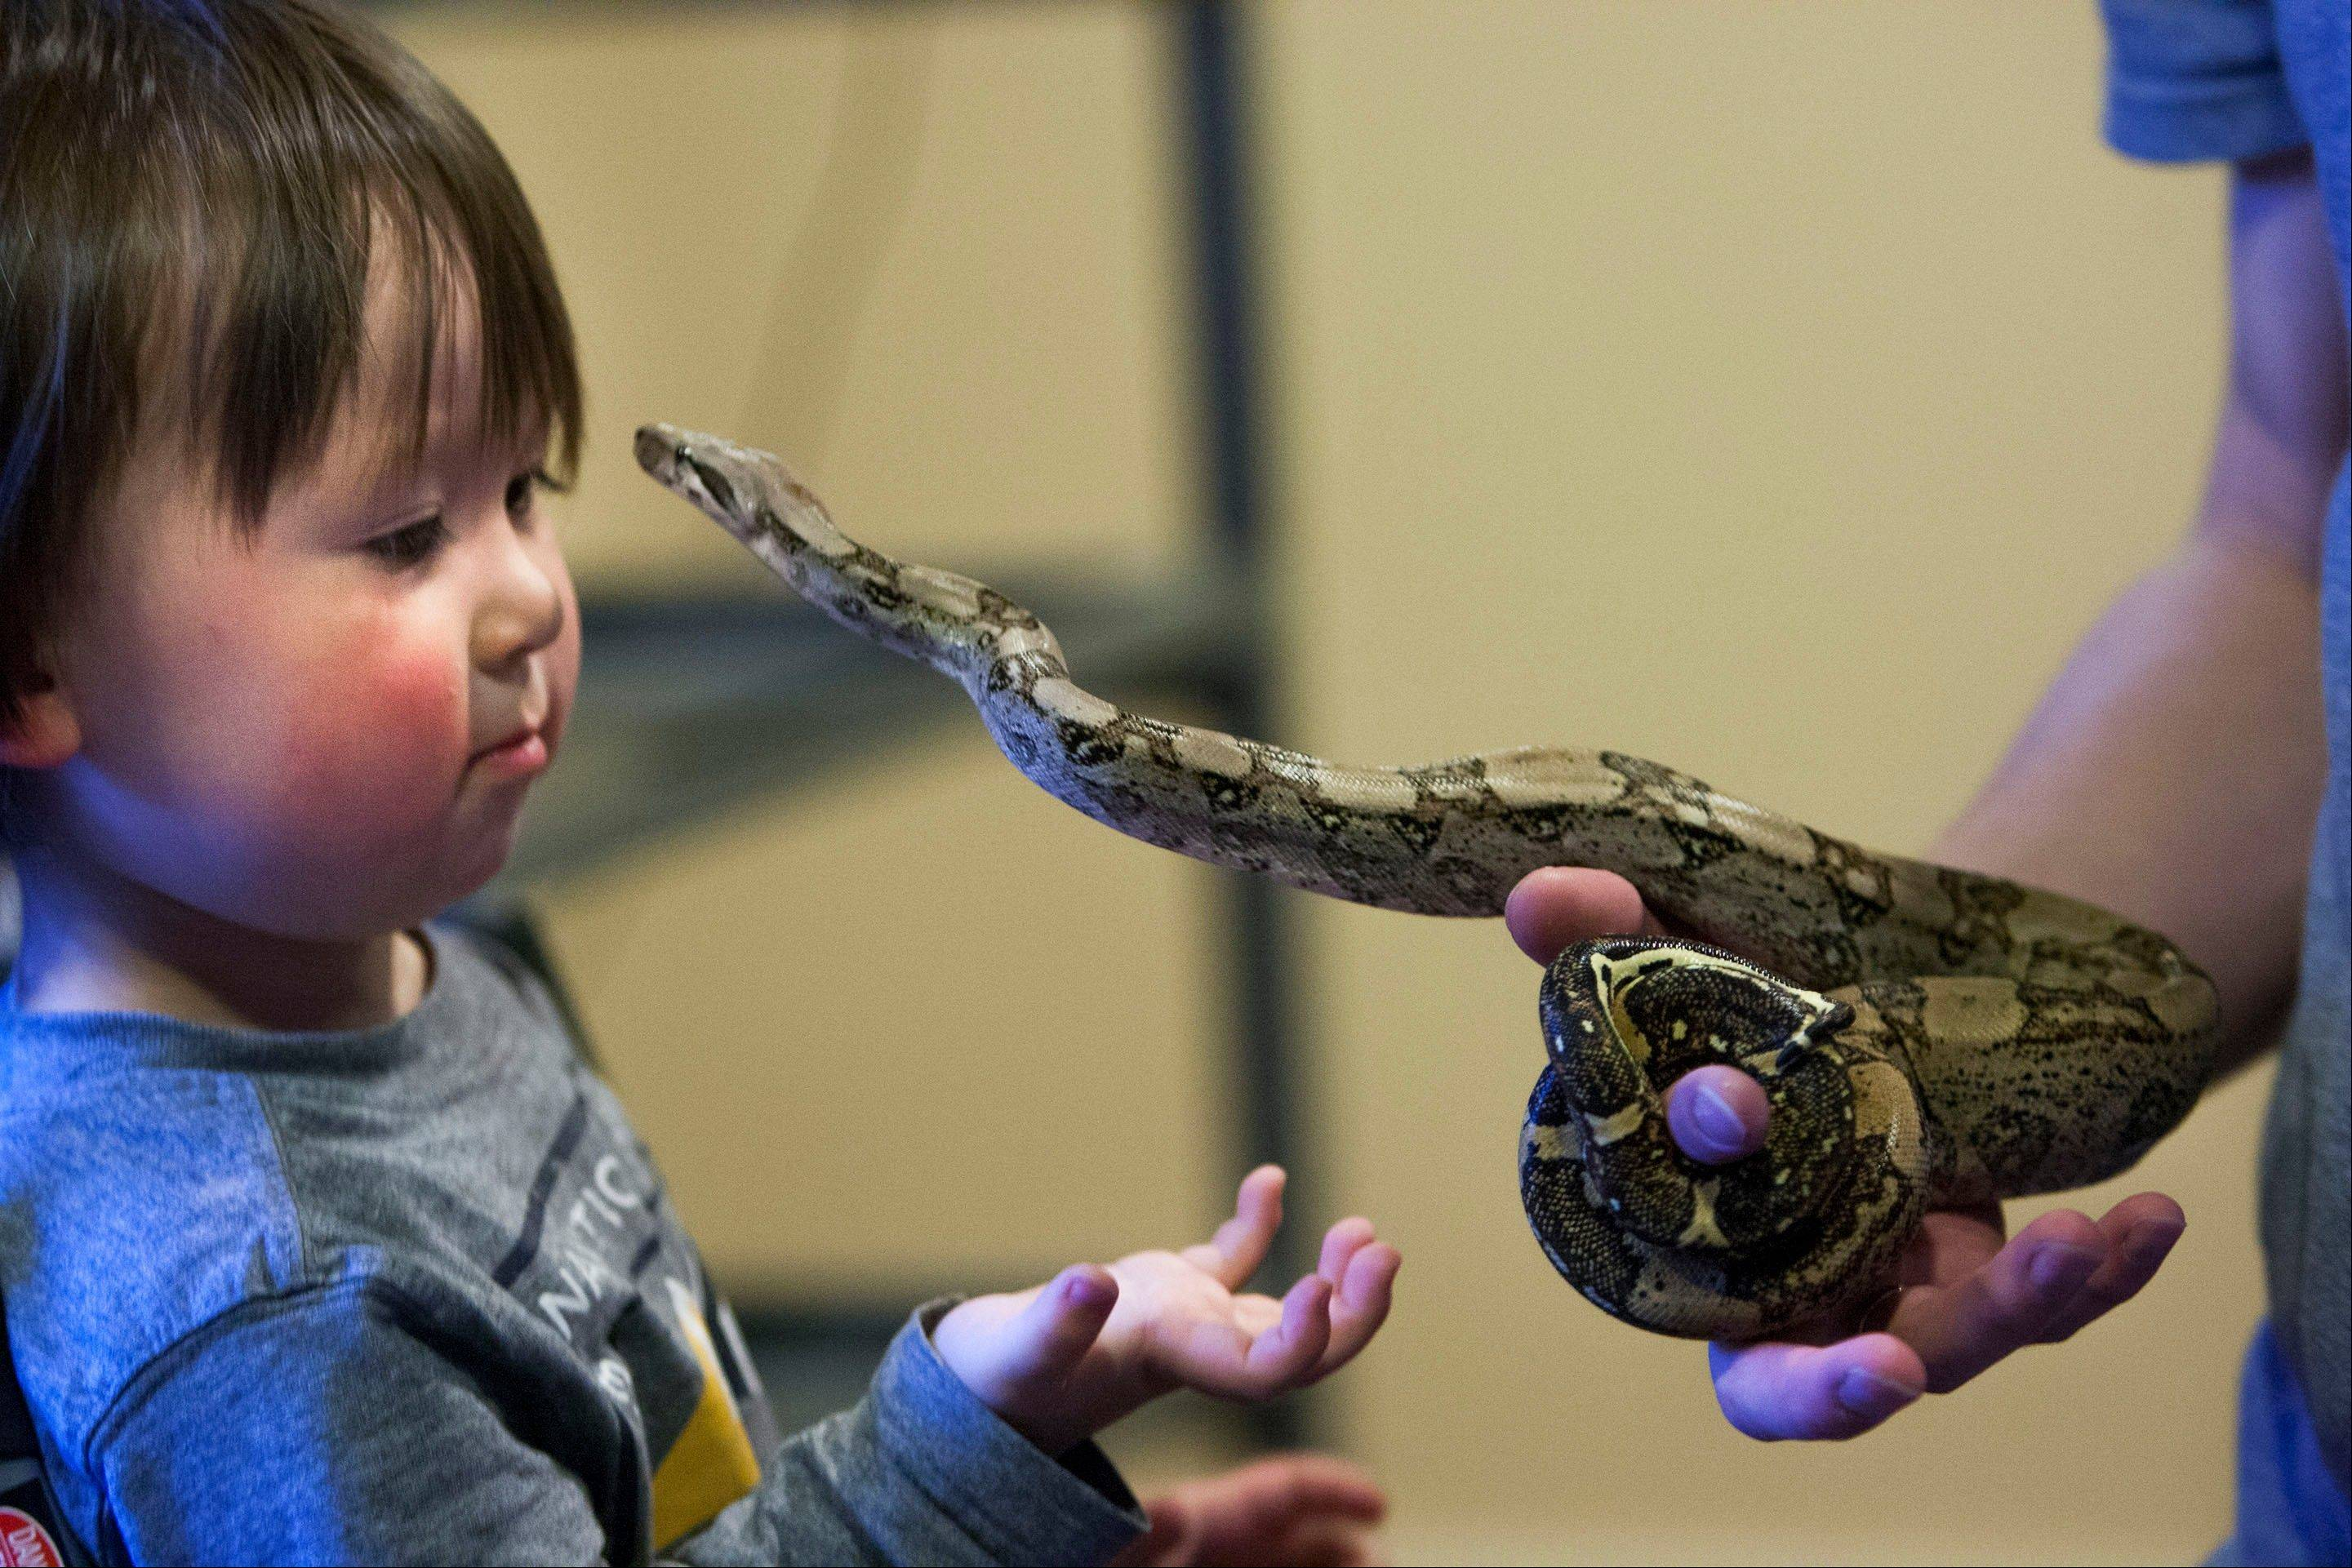 Caiden Cobb admires one of his father�s snakes in Cottonwood Heights, Utah. Thomas Cobb has been ordered by police to get rid of all but one of his 29 exotic boa constrictor snakes because he doesn�t have an exotic pet permit.